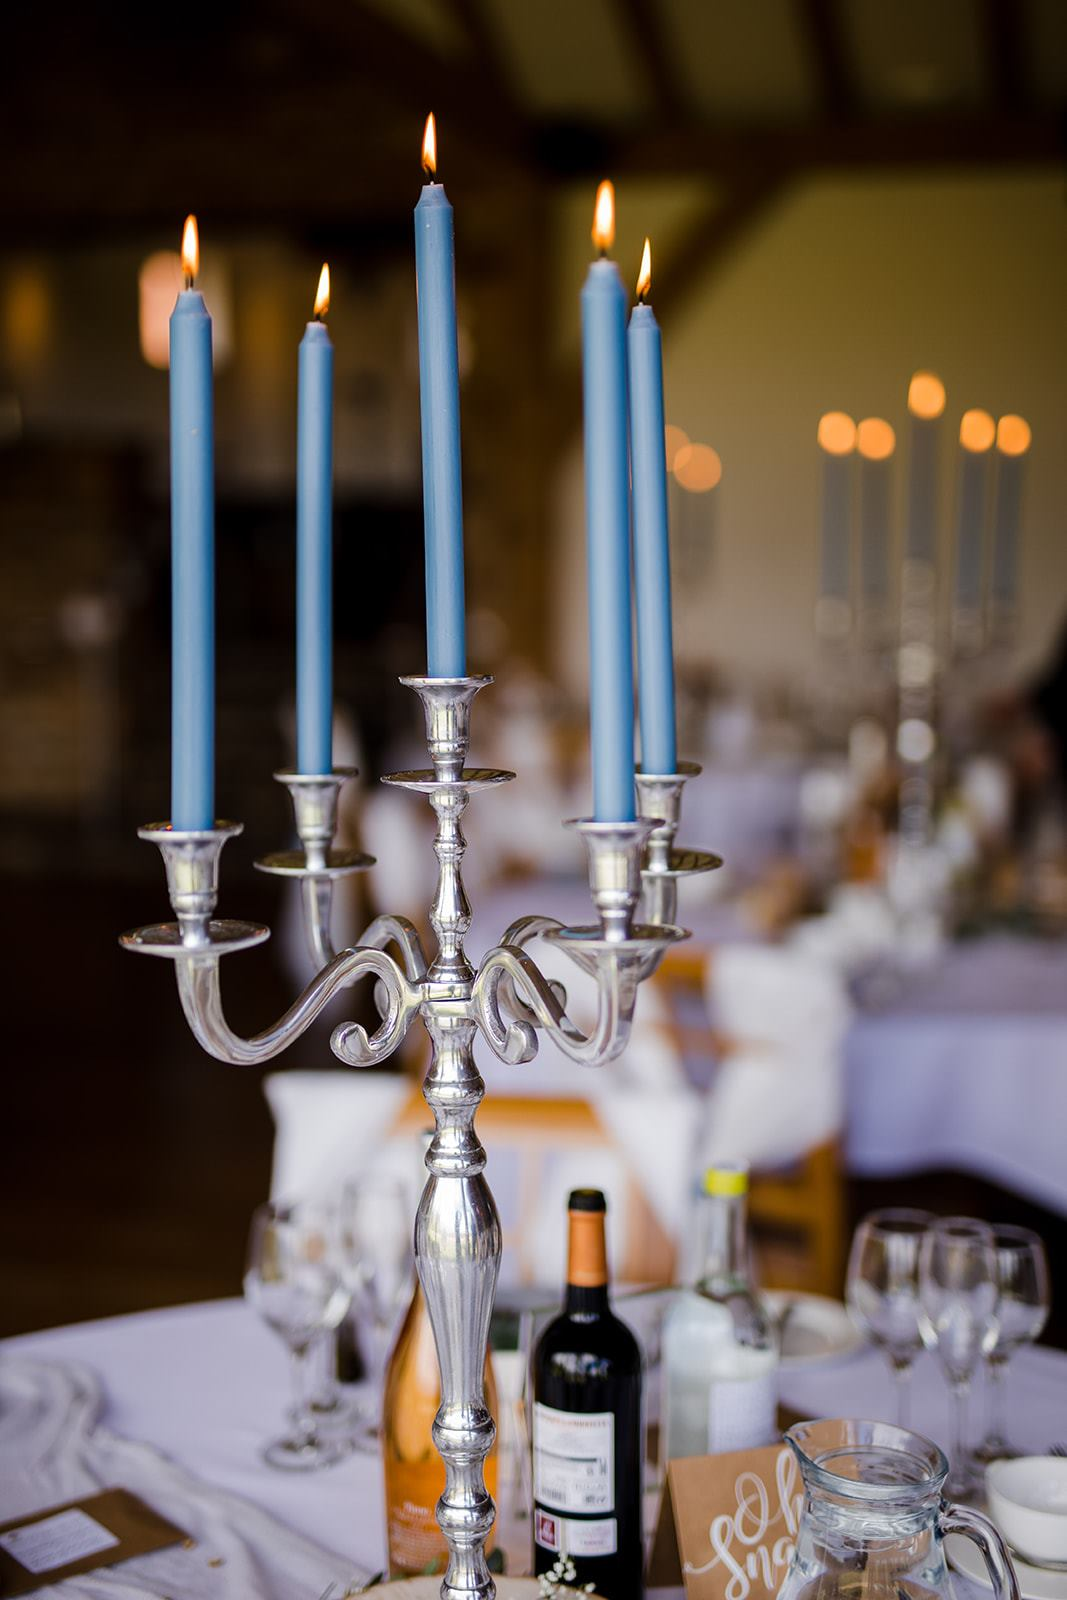 Candelabra centrepiece. We offer a wide range of centrepieces that include candles or light effects.